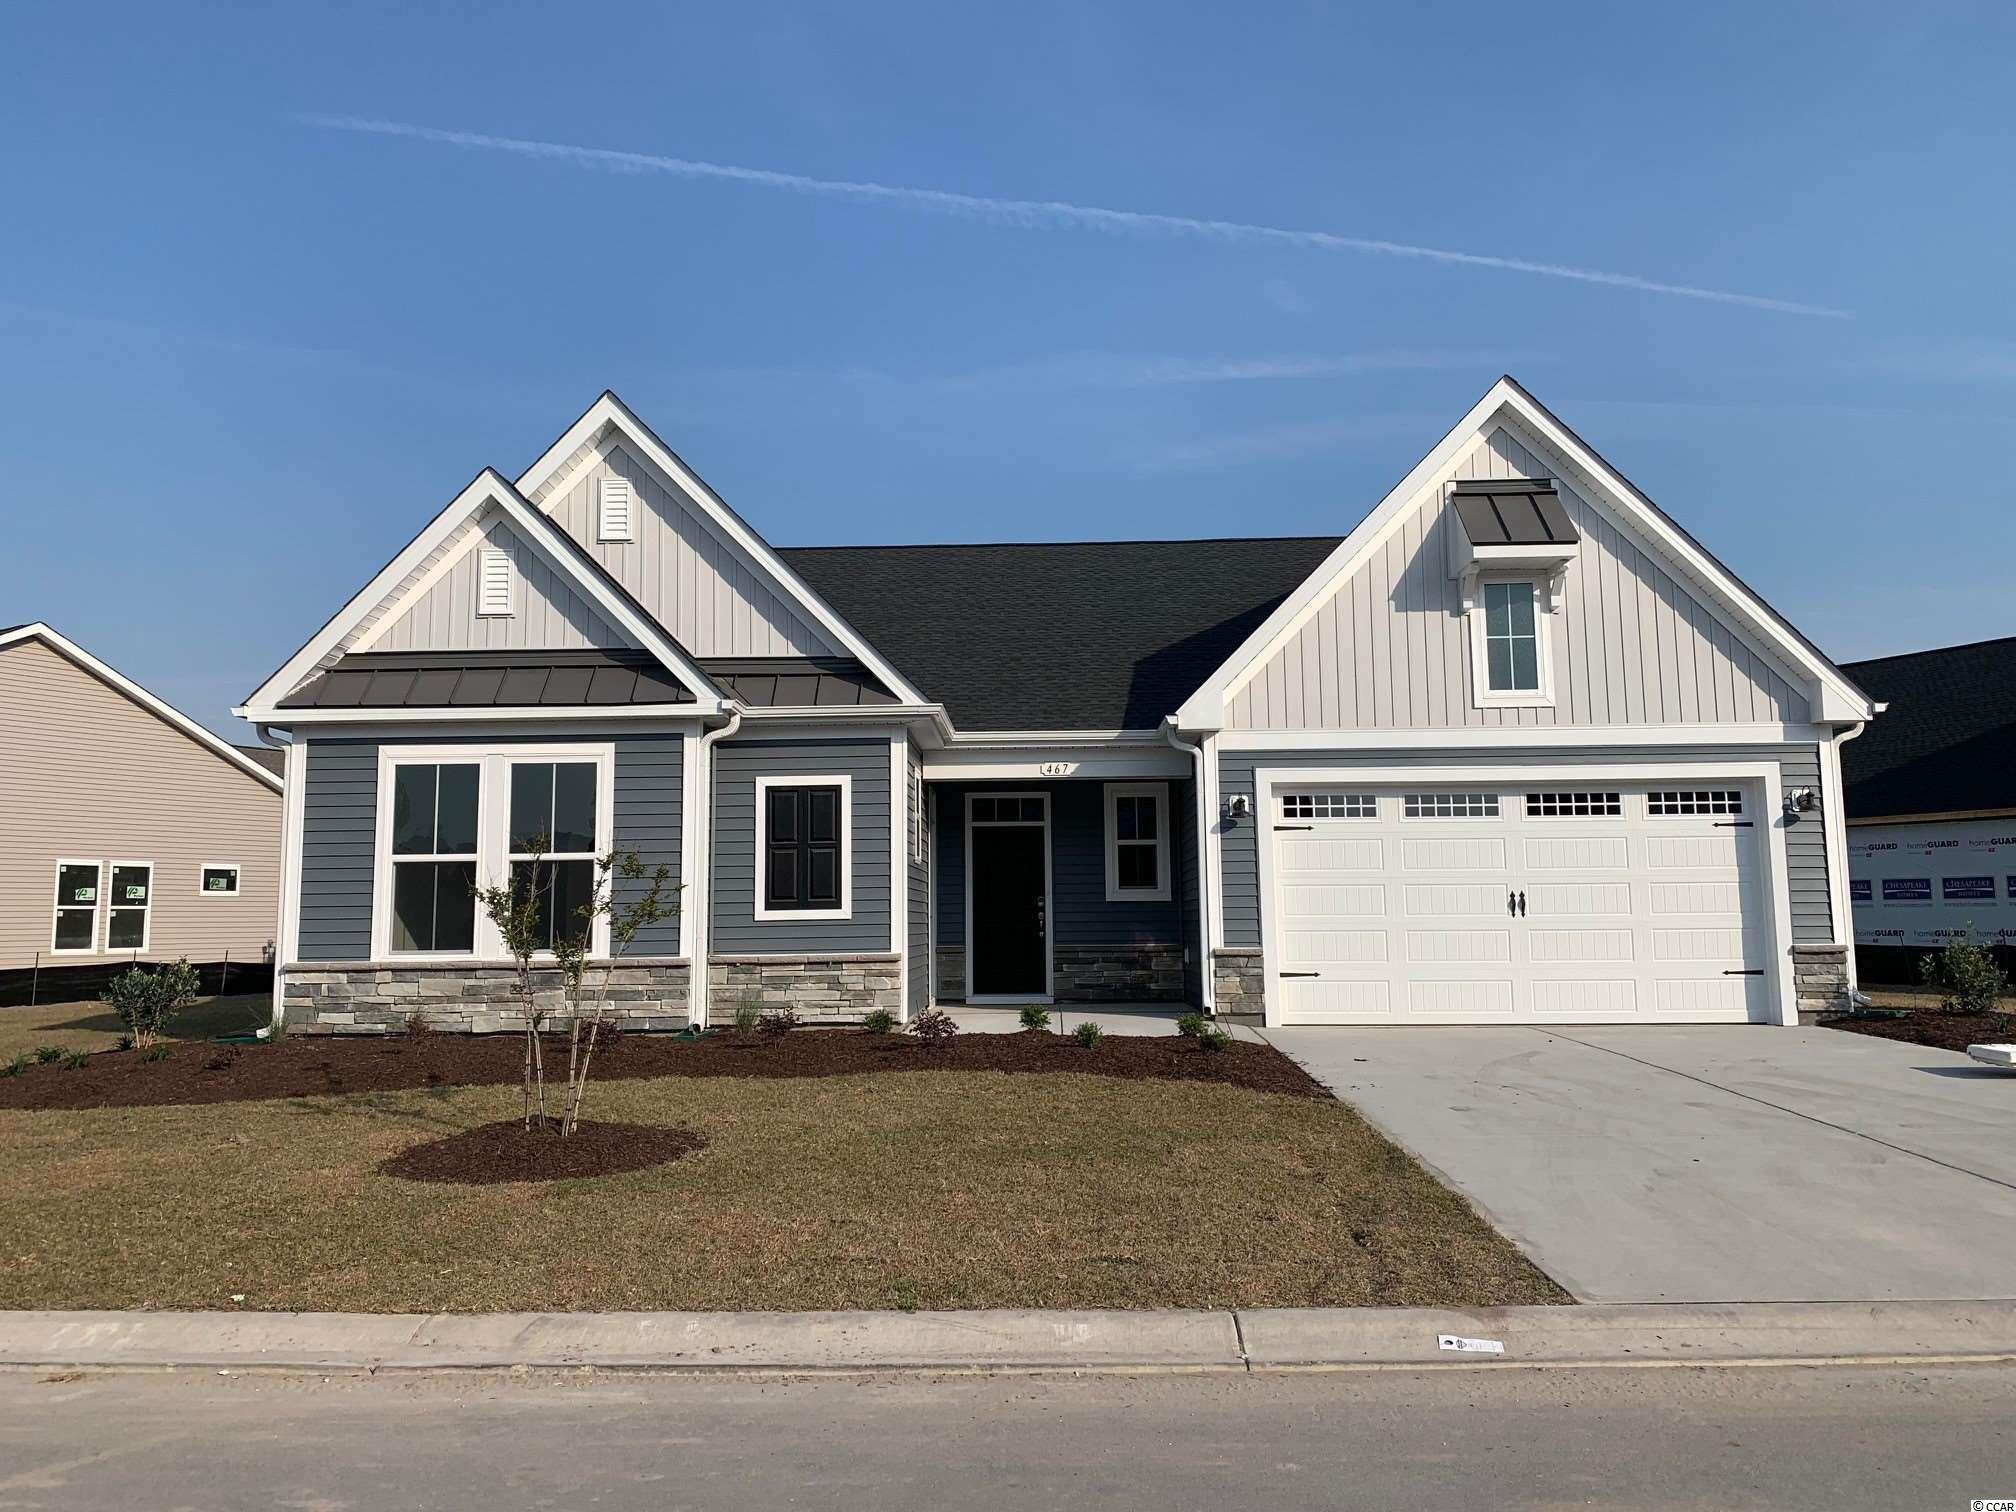 The Seashore floor plan is located in Seaglass Village of Bridgewater! The spacious, single level home features coastal inspired architectural accents, outdoor living area and an extended garage. A covered front porch welcomes  you home to a large, inviting foyer. Split bedroom plan offers plenty of privacy for owners and guests. This unique Seashore model has an open floor plan from the kitchen, breakfast area, great room and dedicated study. The kitchen in this home has a large gourmet island with double ovens. Bridgewater is a natural gas community. The Seashore has a gas furnace and gas tankless water heater. The Master Bedroom has been extended 5', has a trey ceiling with crown molding and two large walk in closets. Master Bathroom features a 5ft tile shower with bench seat, double vanities, water closet with comfort height toilets. Enjoy the Carolina breeze out on the covered rear porch. This home is a must see on water lot.  Schedule your appointment today!